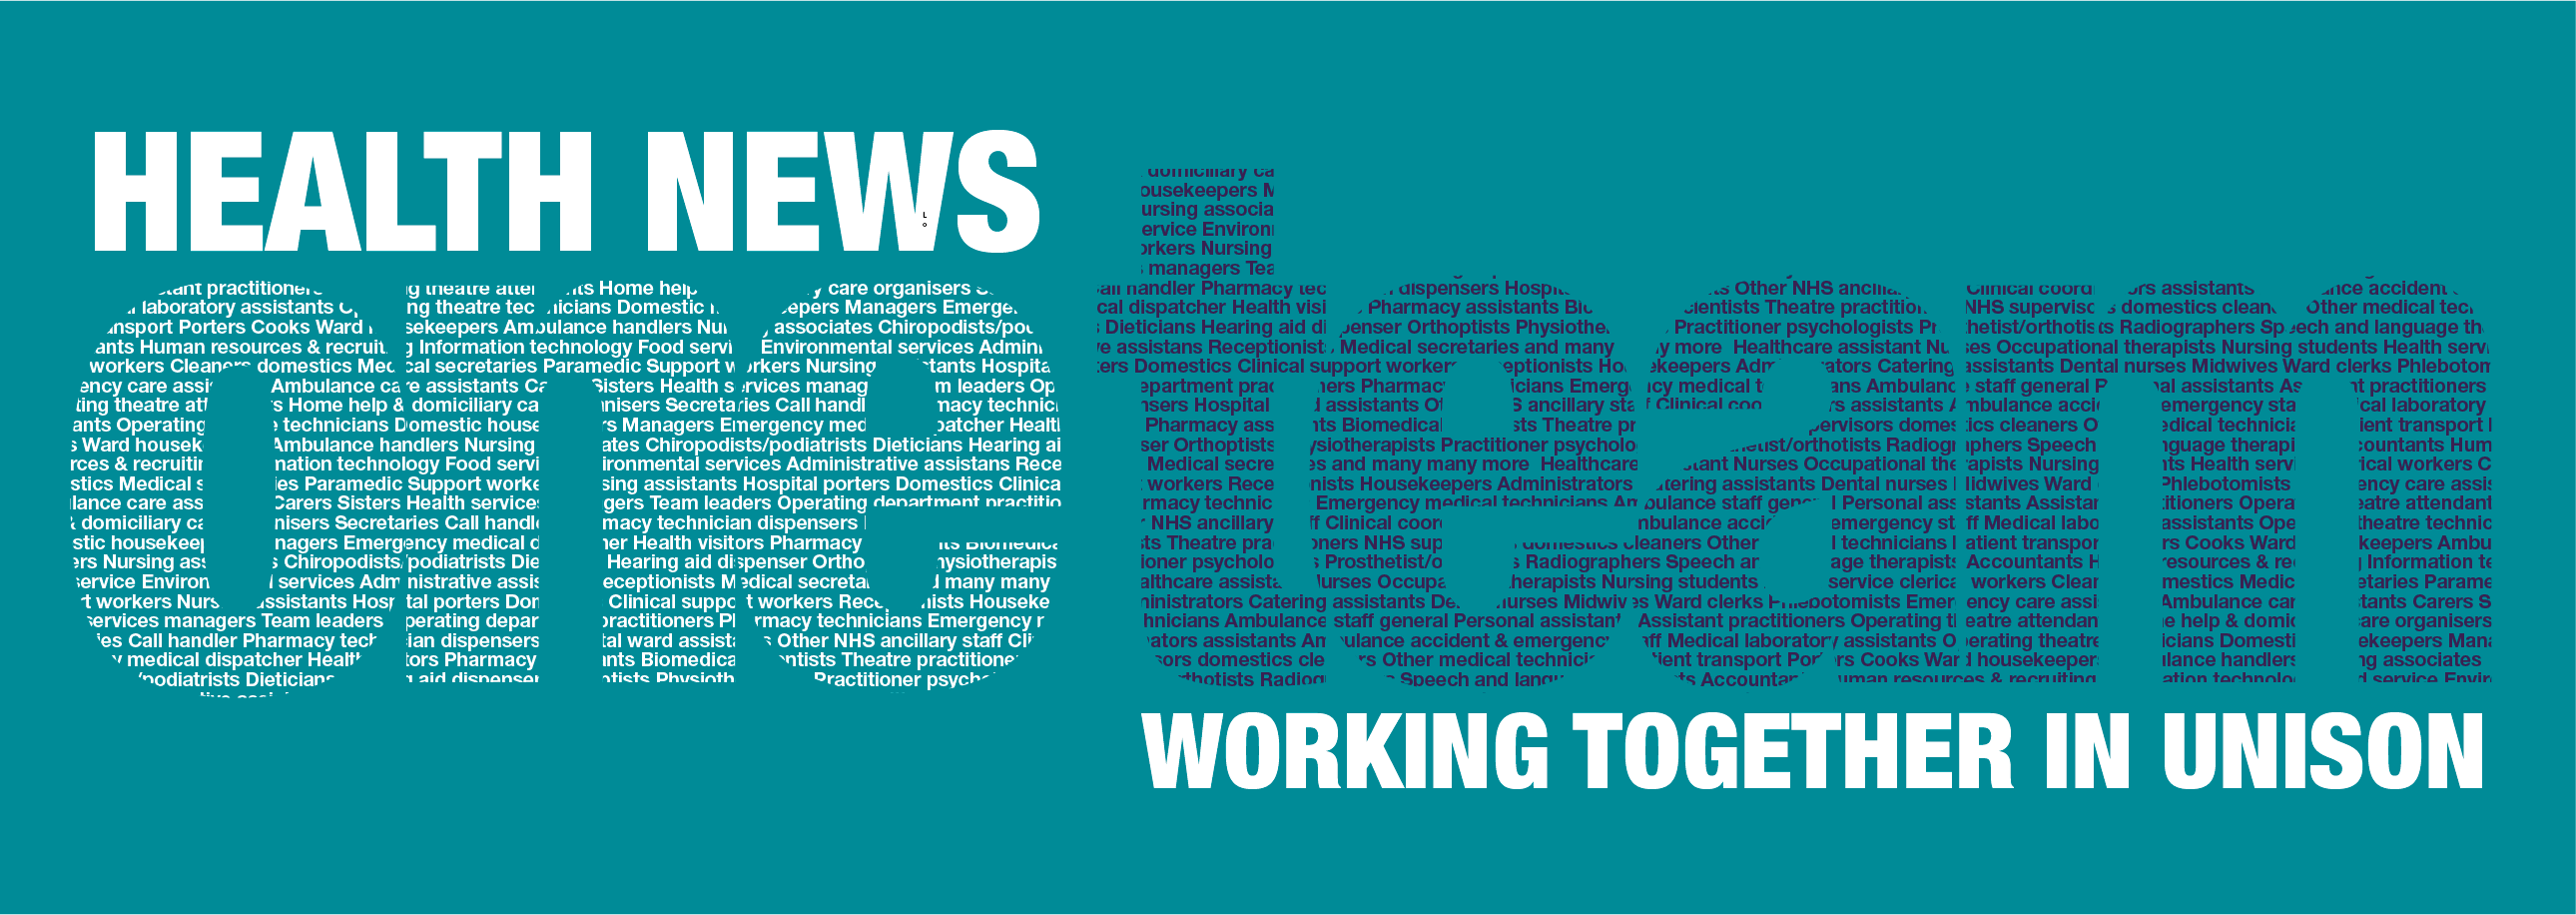 Health News - keep up to date with all things health care.